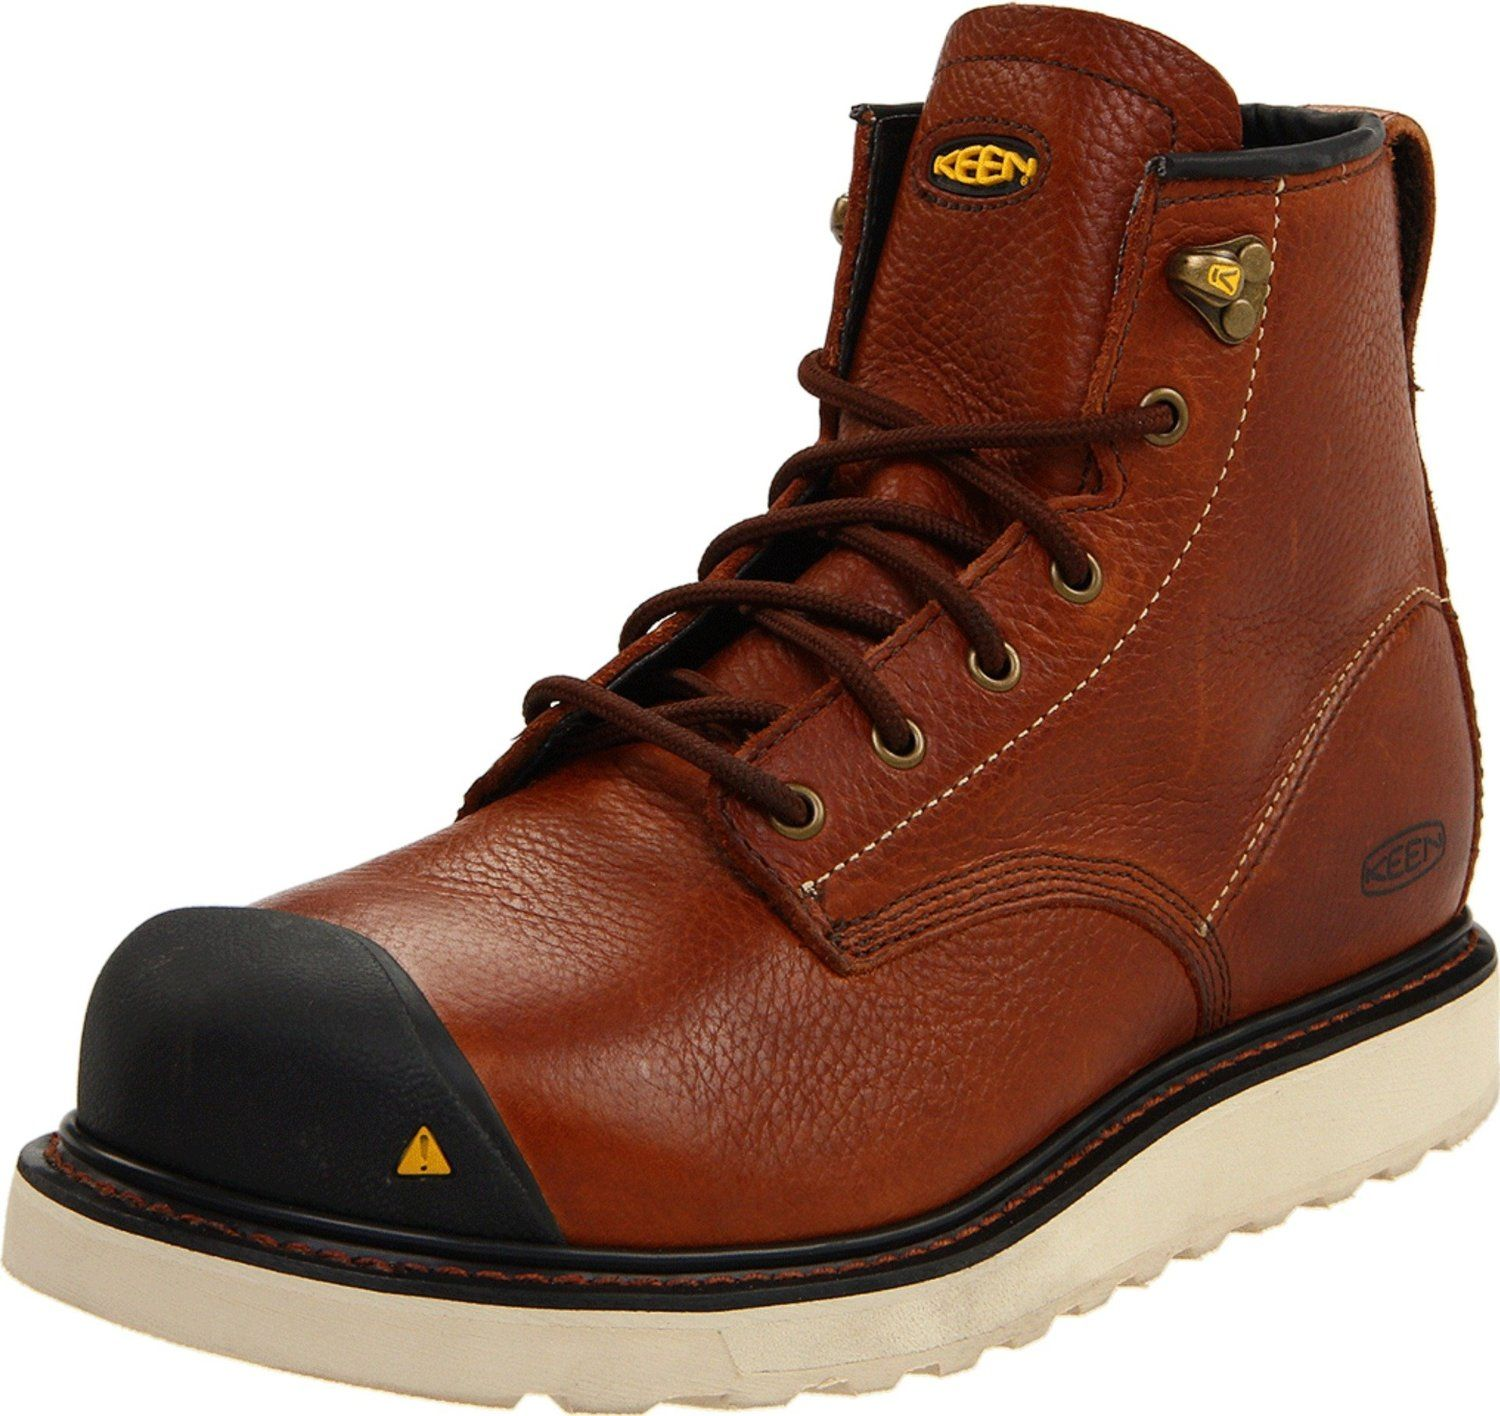 newest 2ab75 81a98 Keen Utility Men's California Work Boot: Shoes | Boots in ...